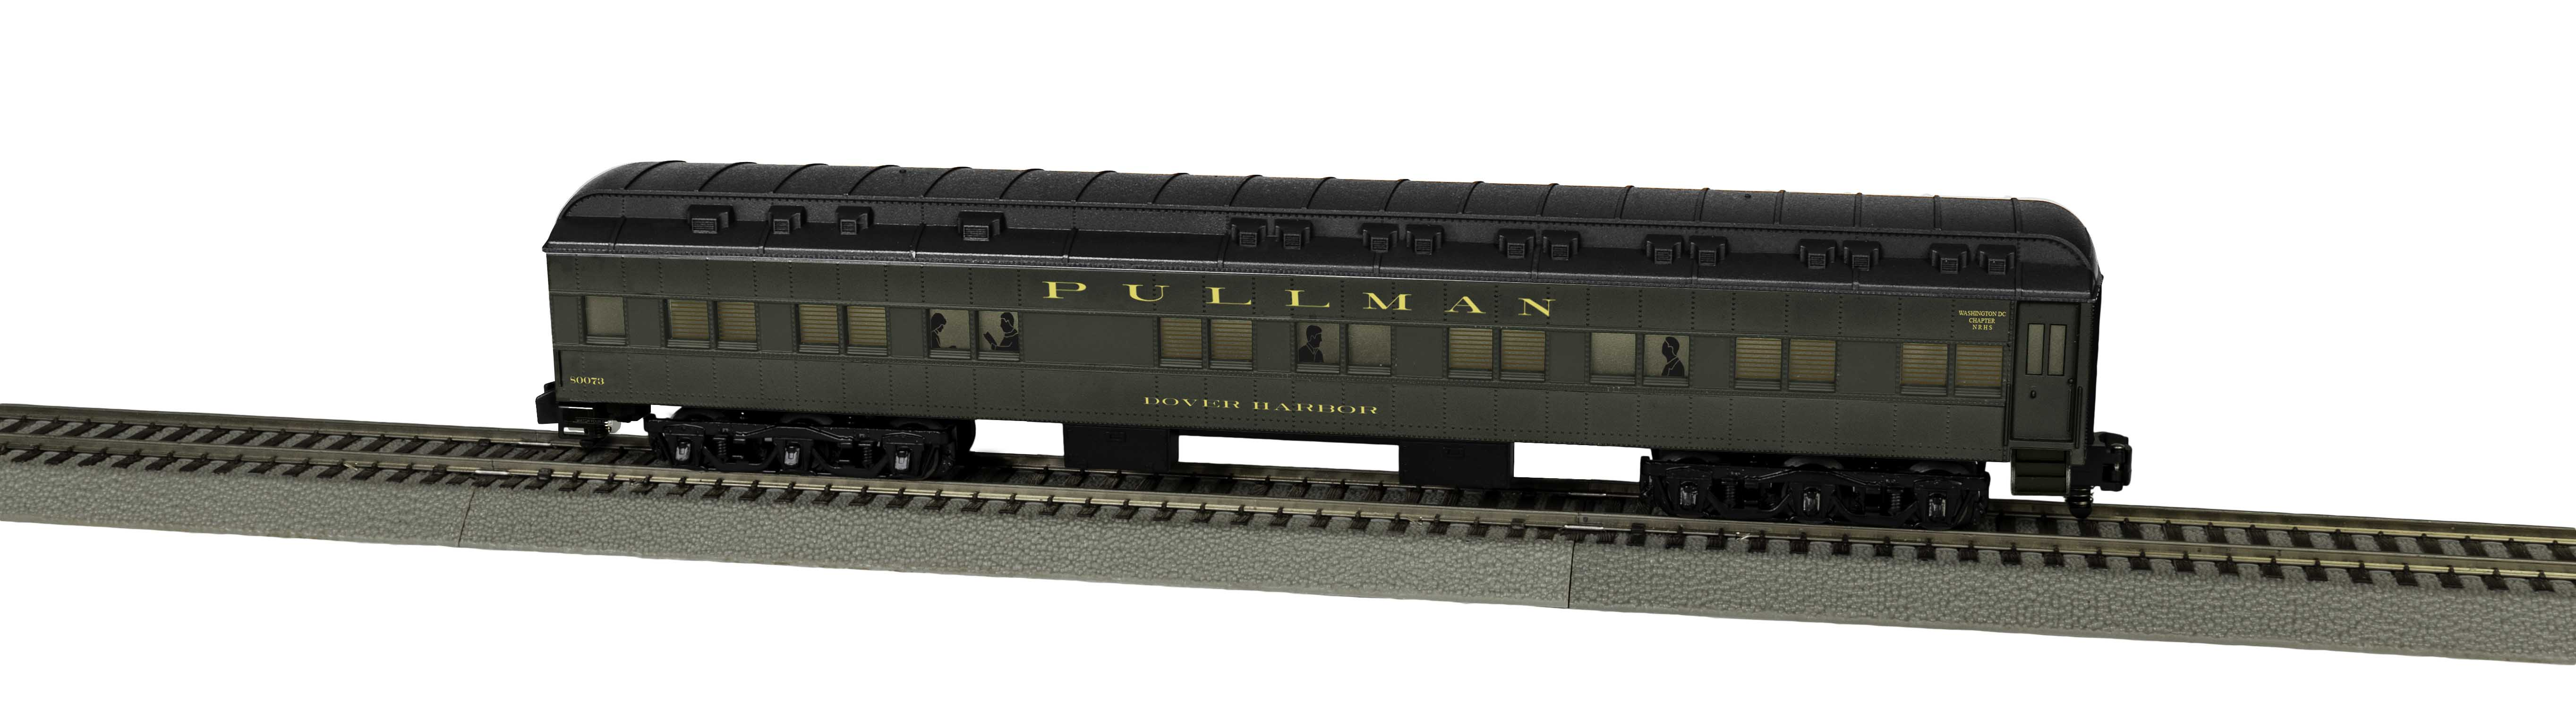 Lionel 2019411 S Pullman Heavyweight Sleeper Dover Harbor